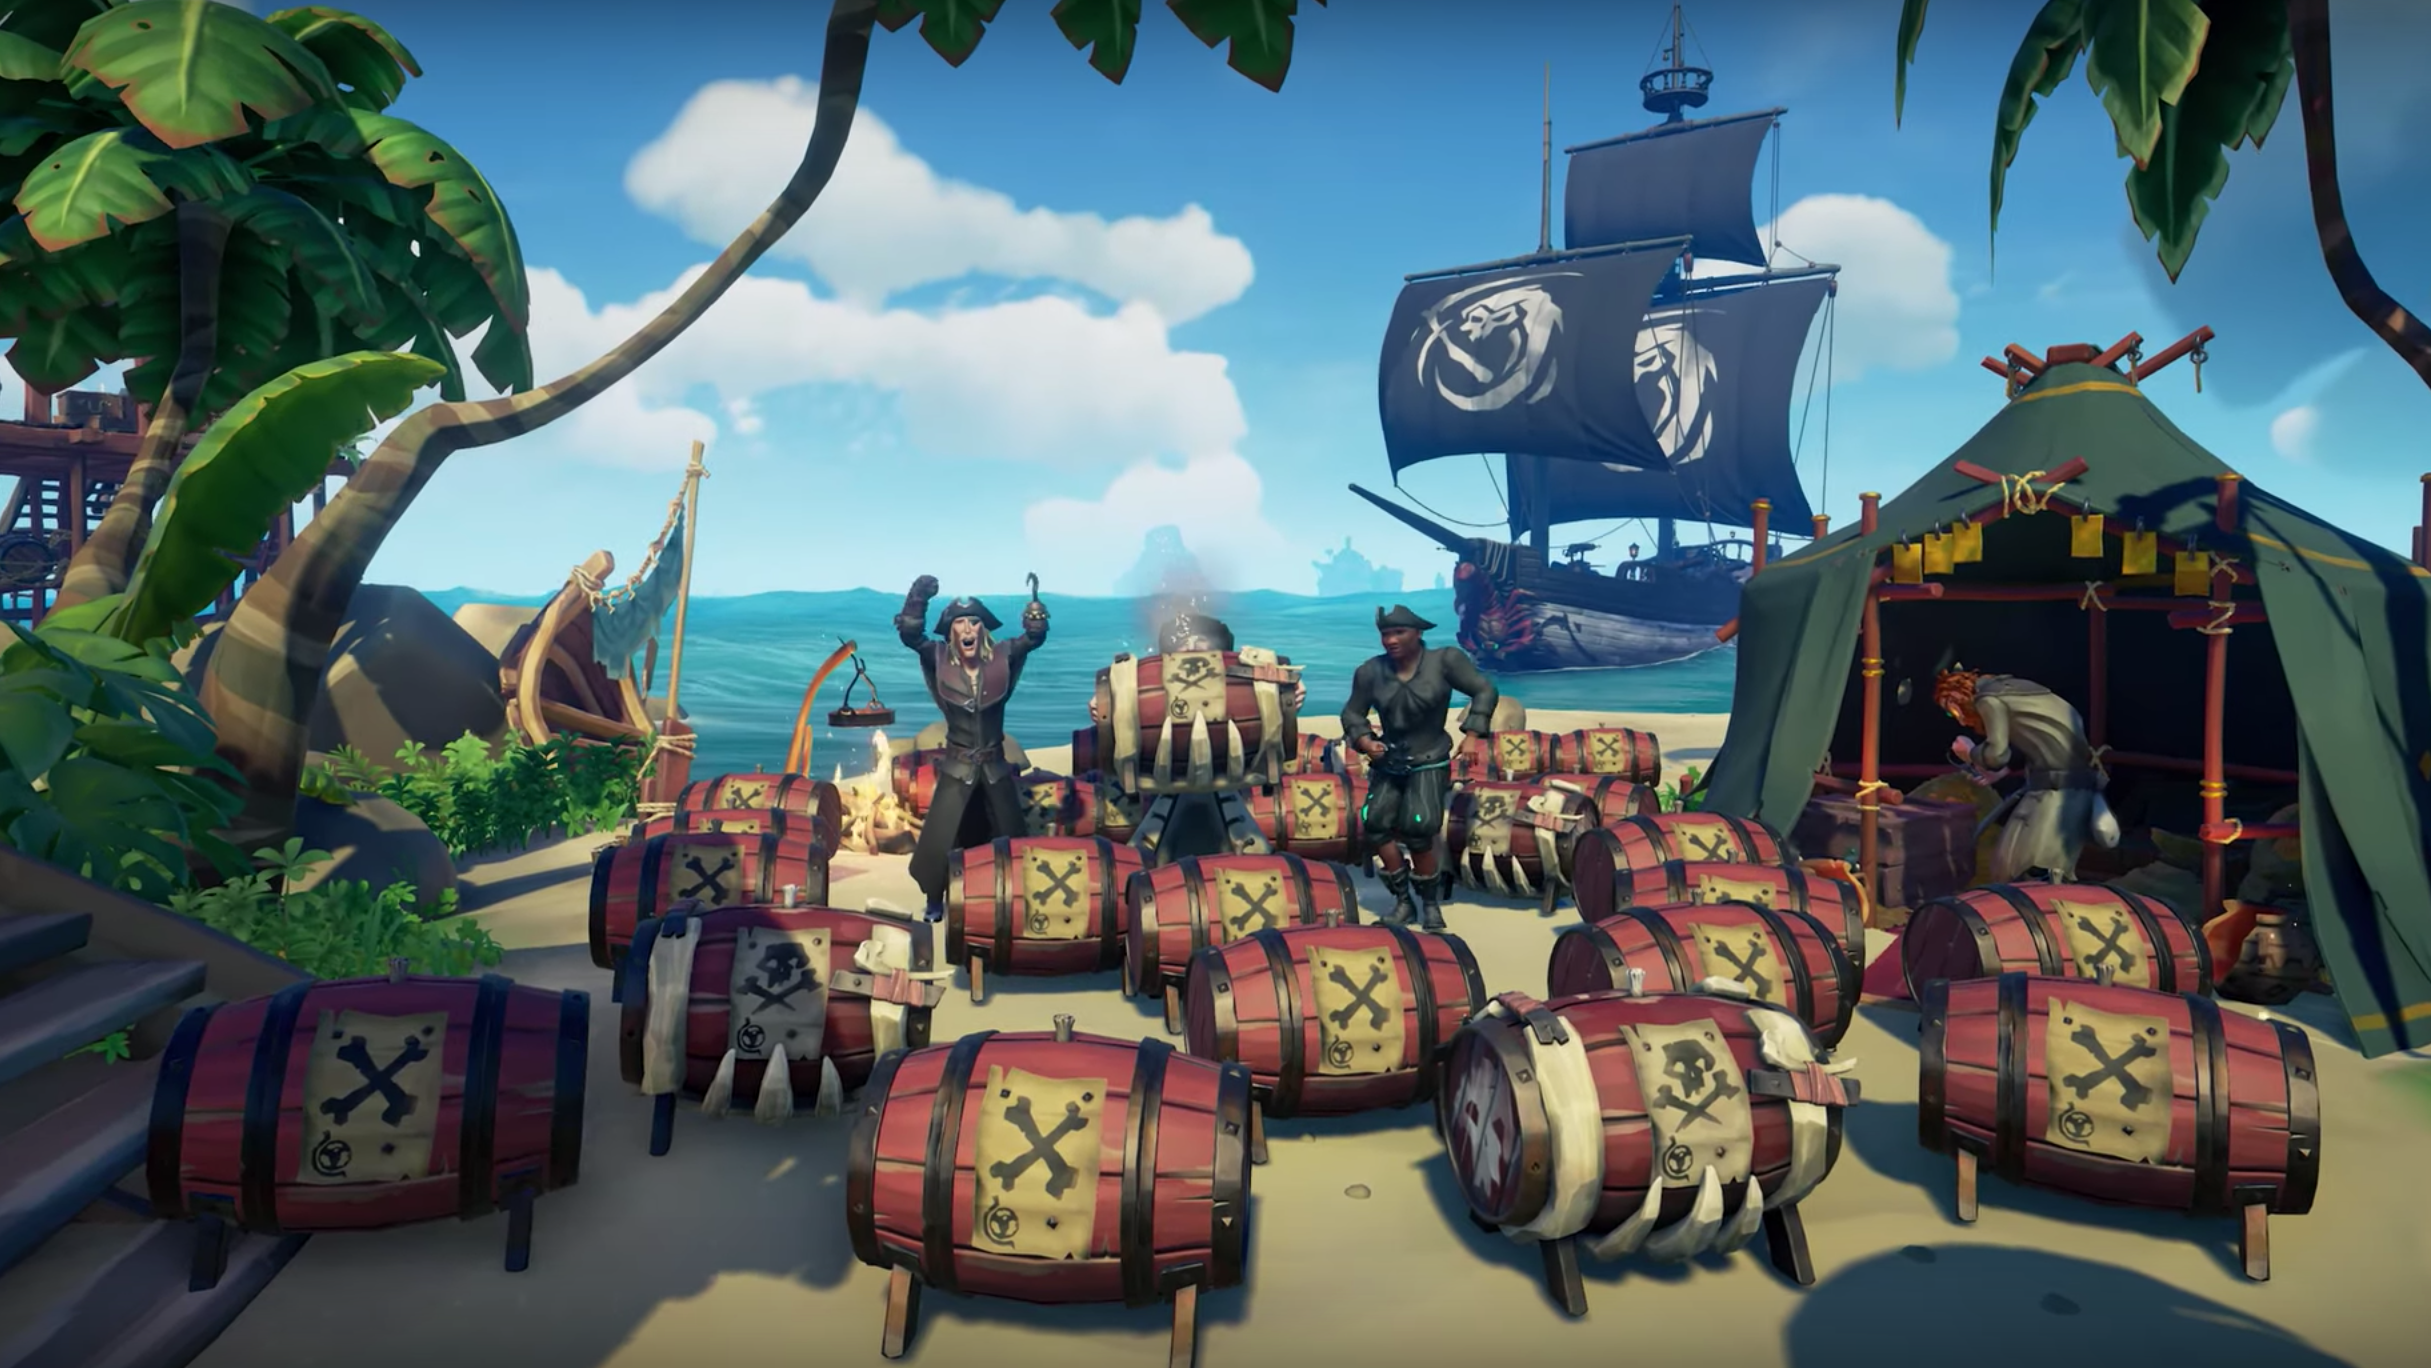 Sea Of Thieves Gets Monthly Updates And The First One Is Pretty… Explosive